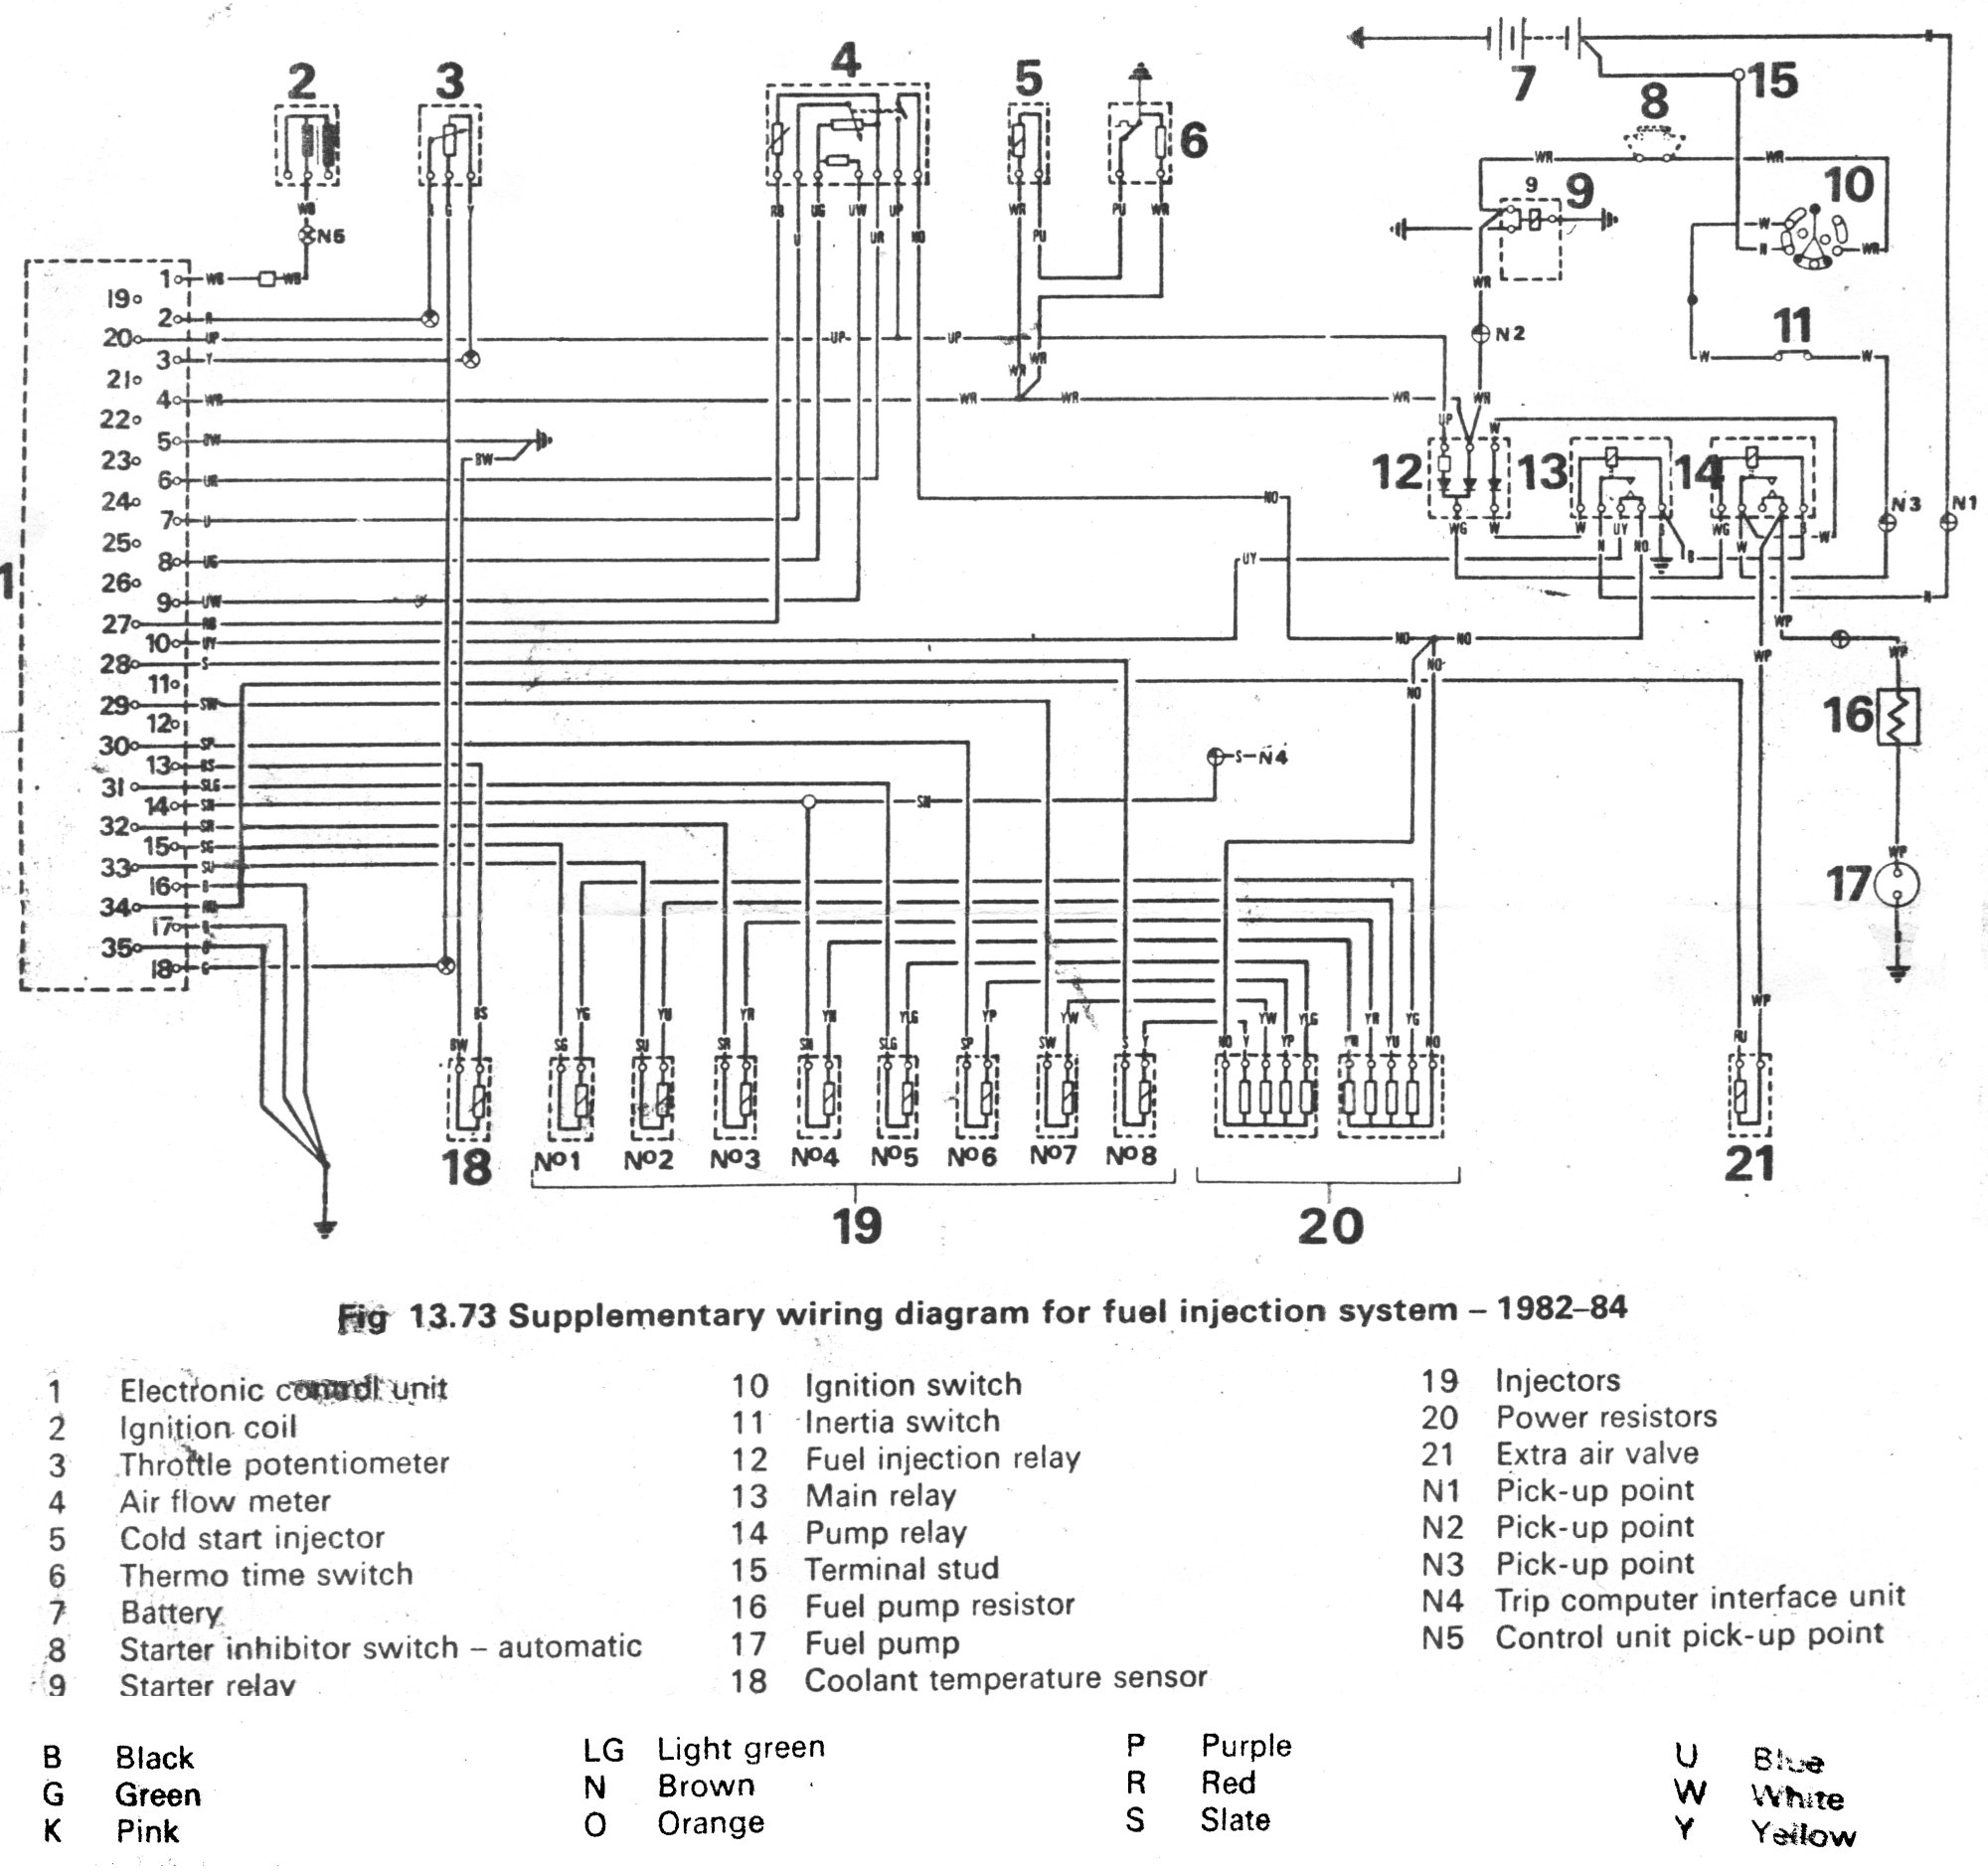 2000 Chevy Silverado Heater Core Replacement furthermore 1996 Ford Explorer Underhood Fuse Box Diagram besides 49730 V8 Flapper Efi Wiring Diagram Please as well 2011 Ford Blend Door Replacement as well T12395605 Evap vent valve soleniod located. on 2000 ford ranger aftermarket parts